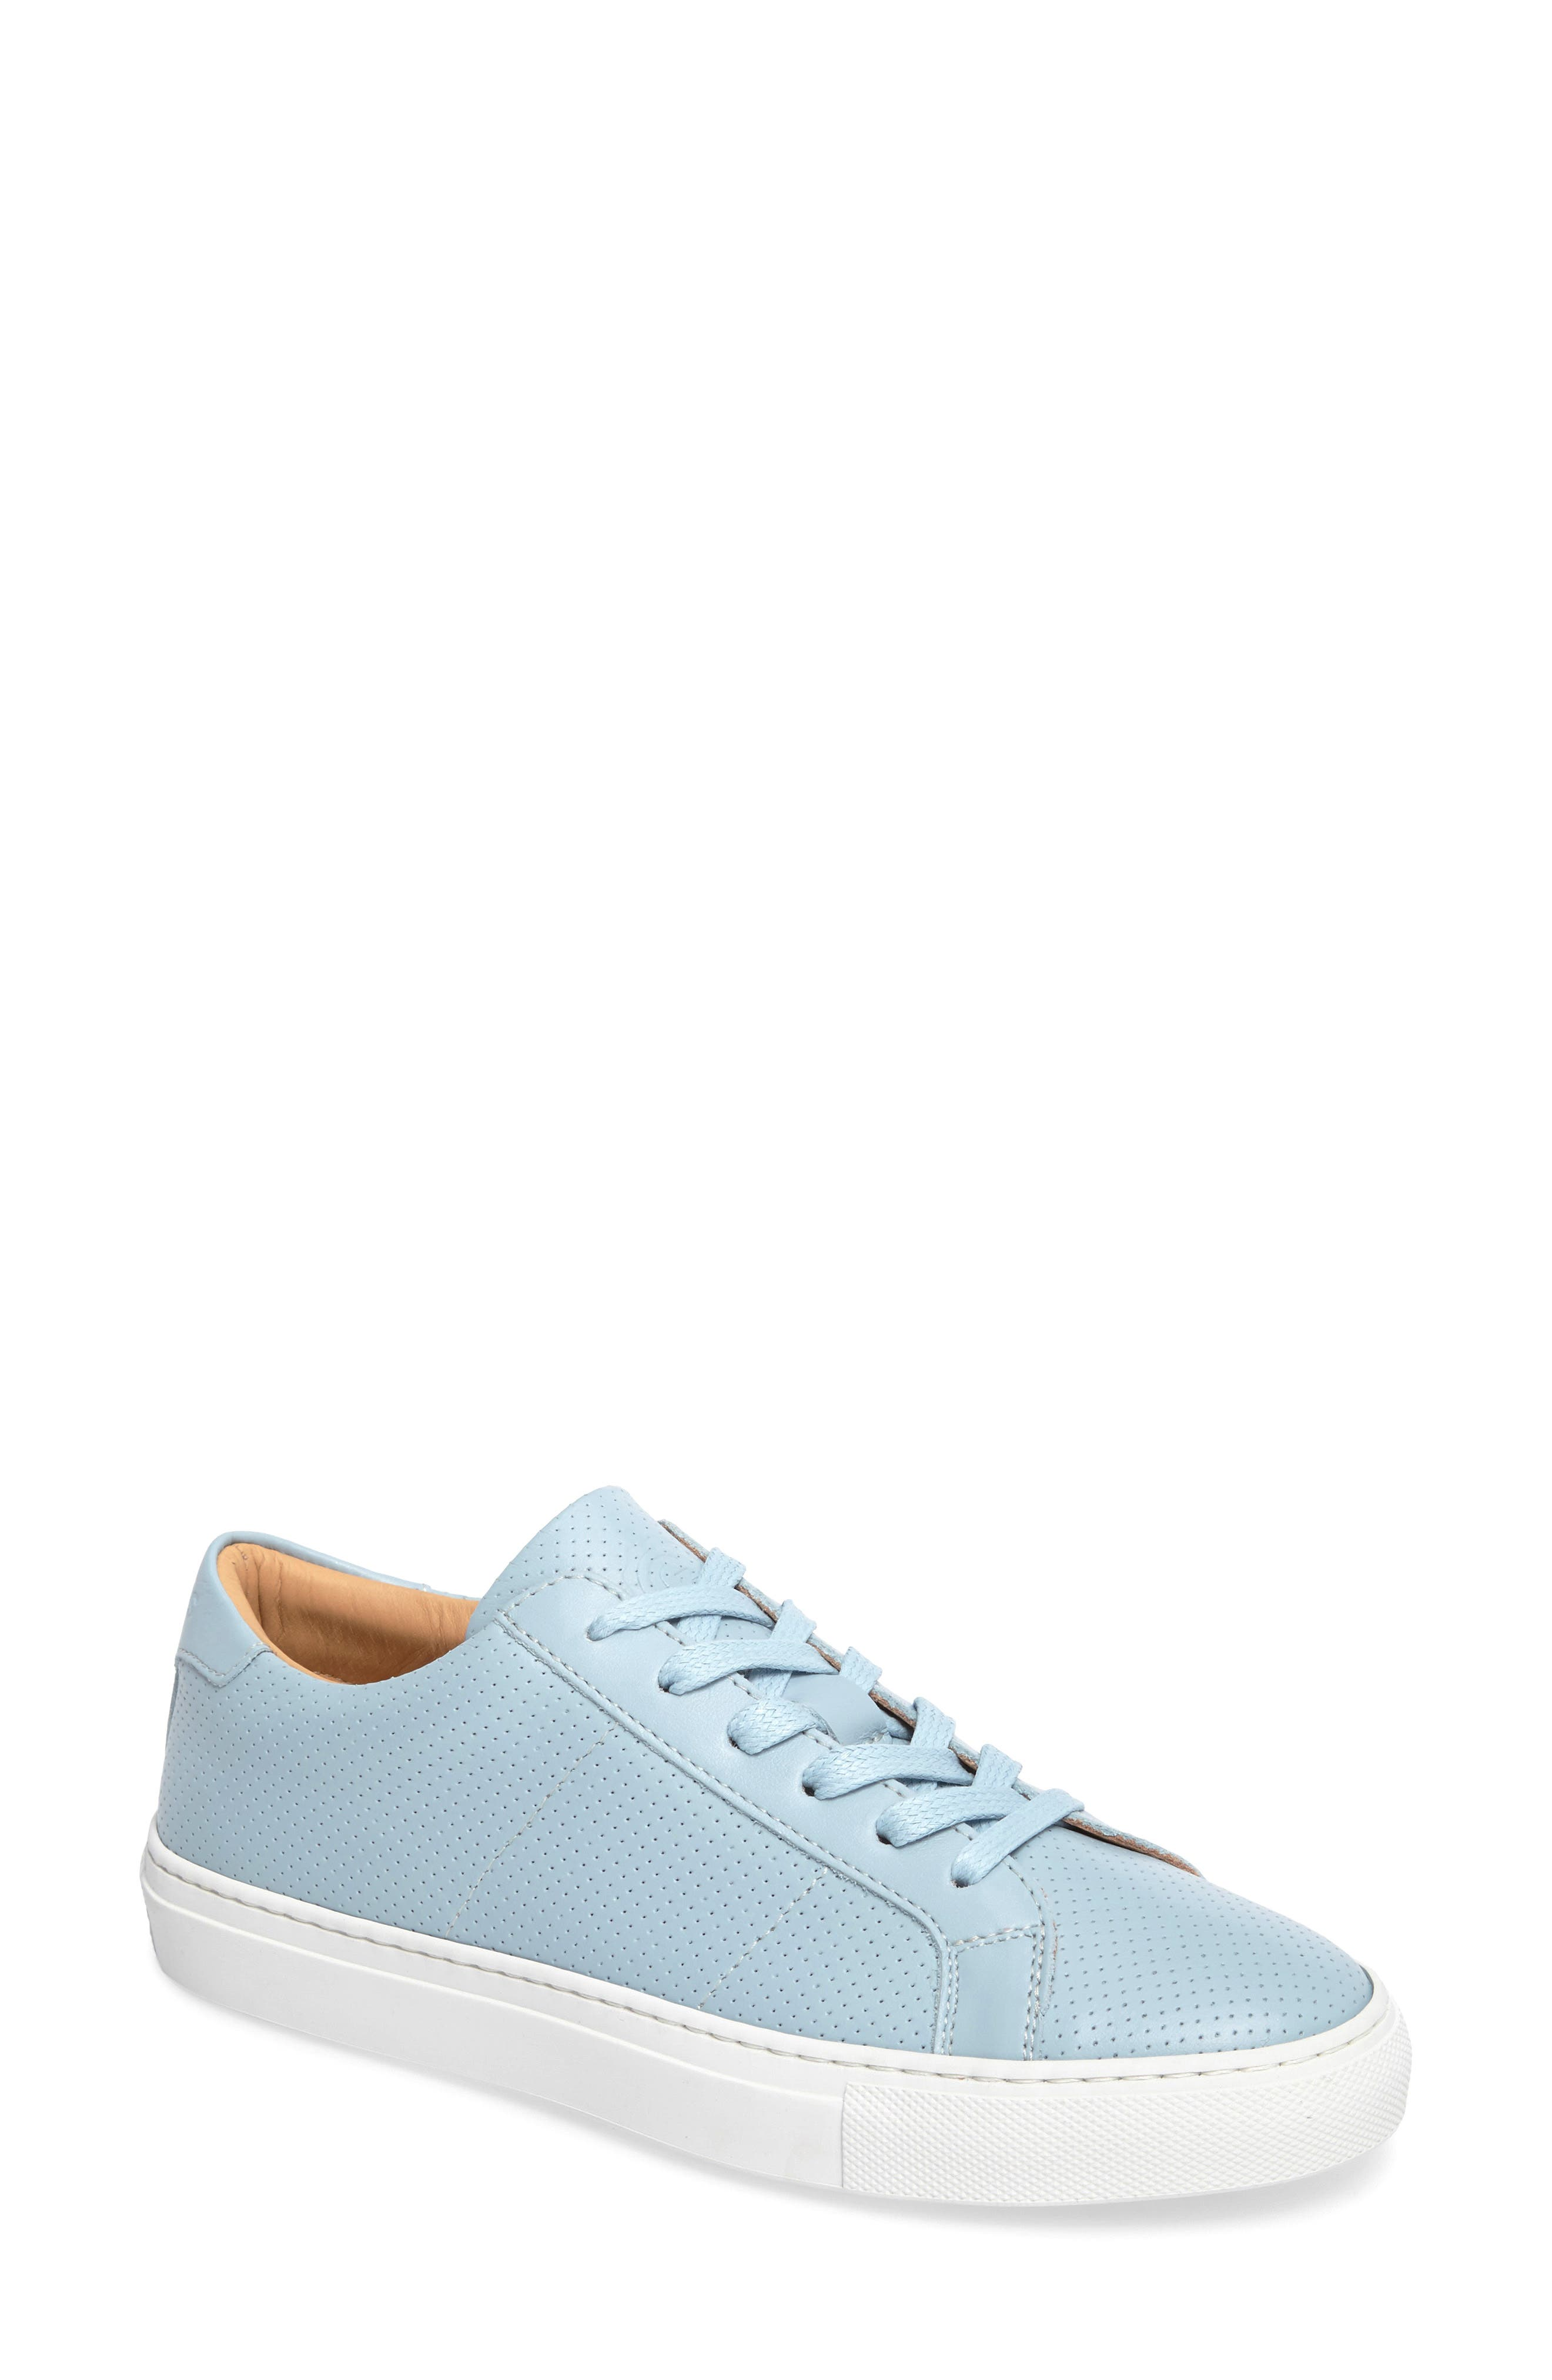 GREATS Royale Perforated Low Top Sneaker in Light Blue Perforated Leather